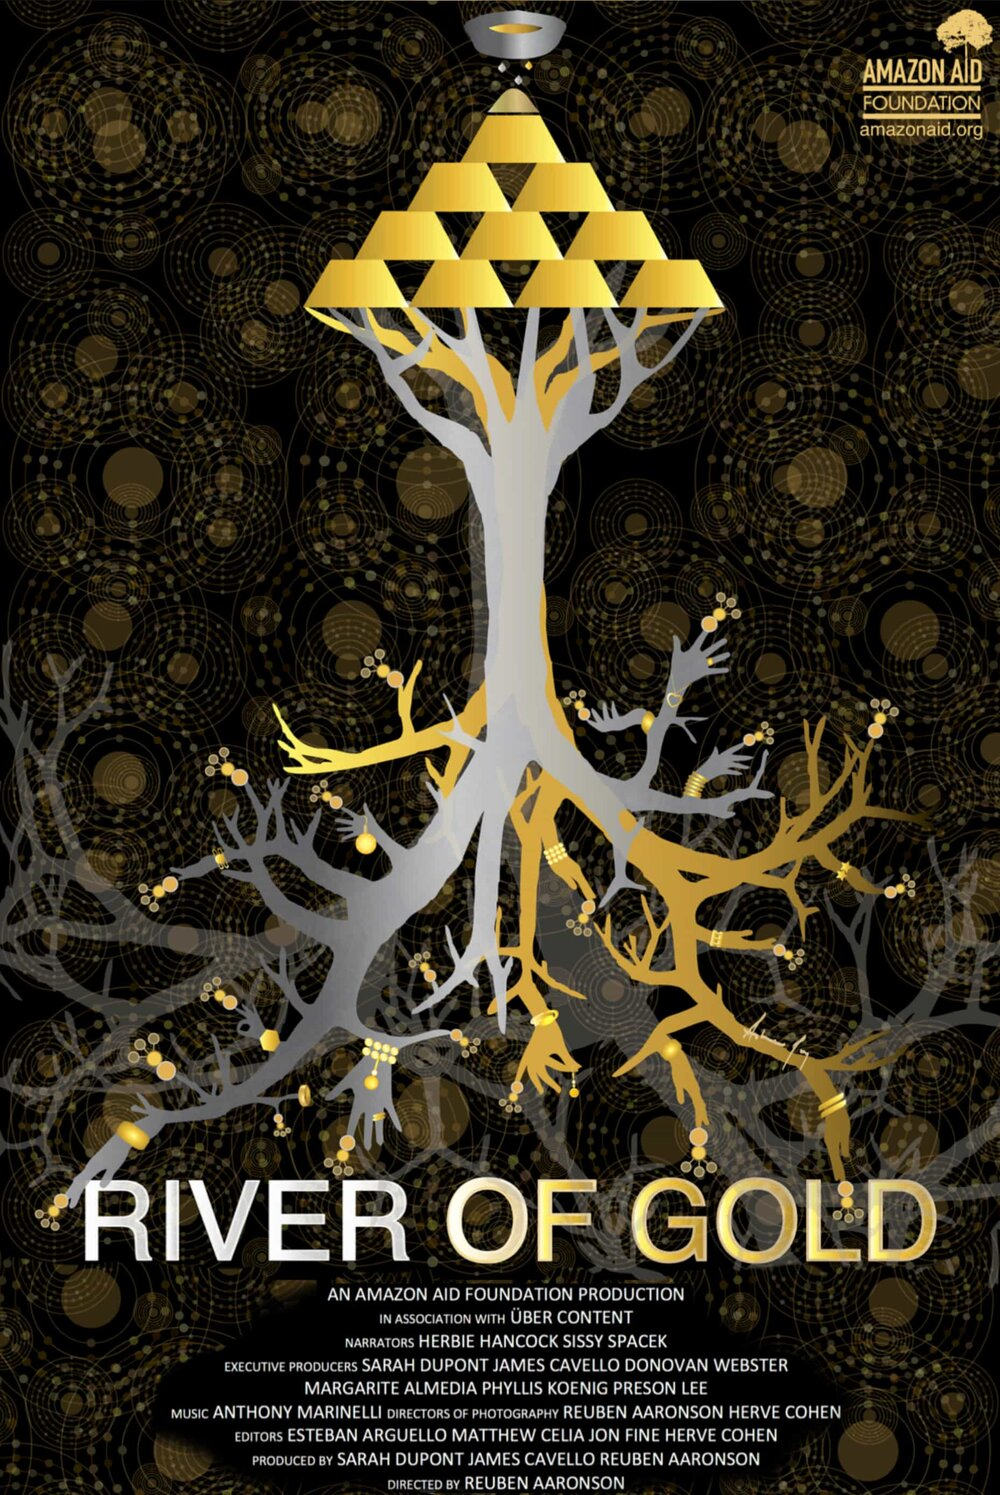 RiverOfGold-FilmPoster-English-AsherJay.jpg